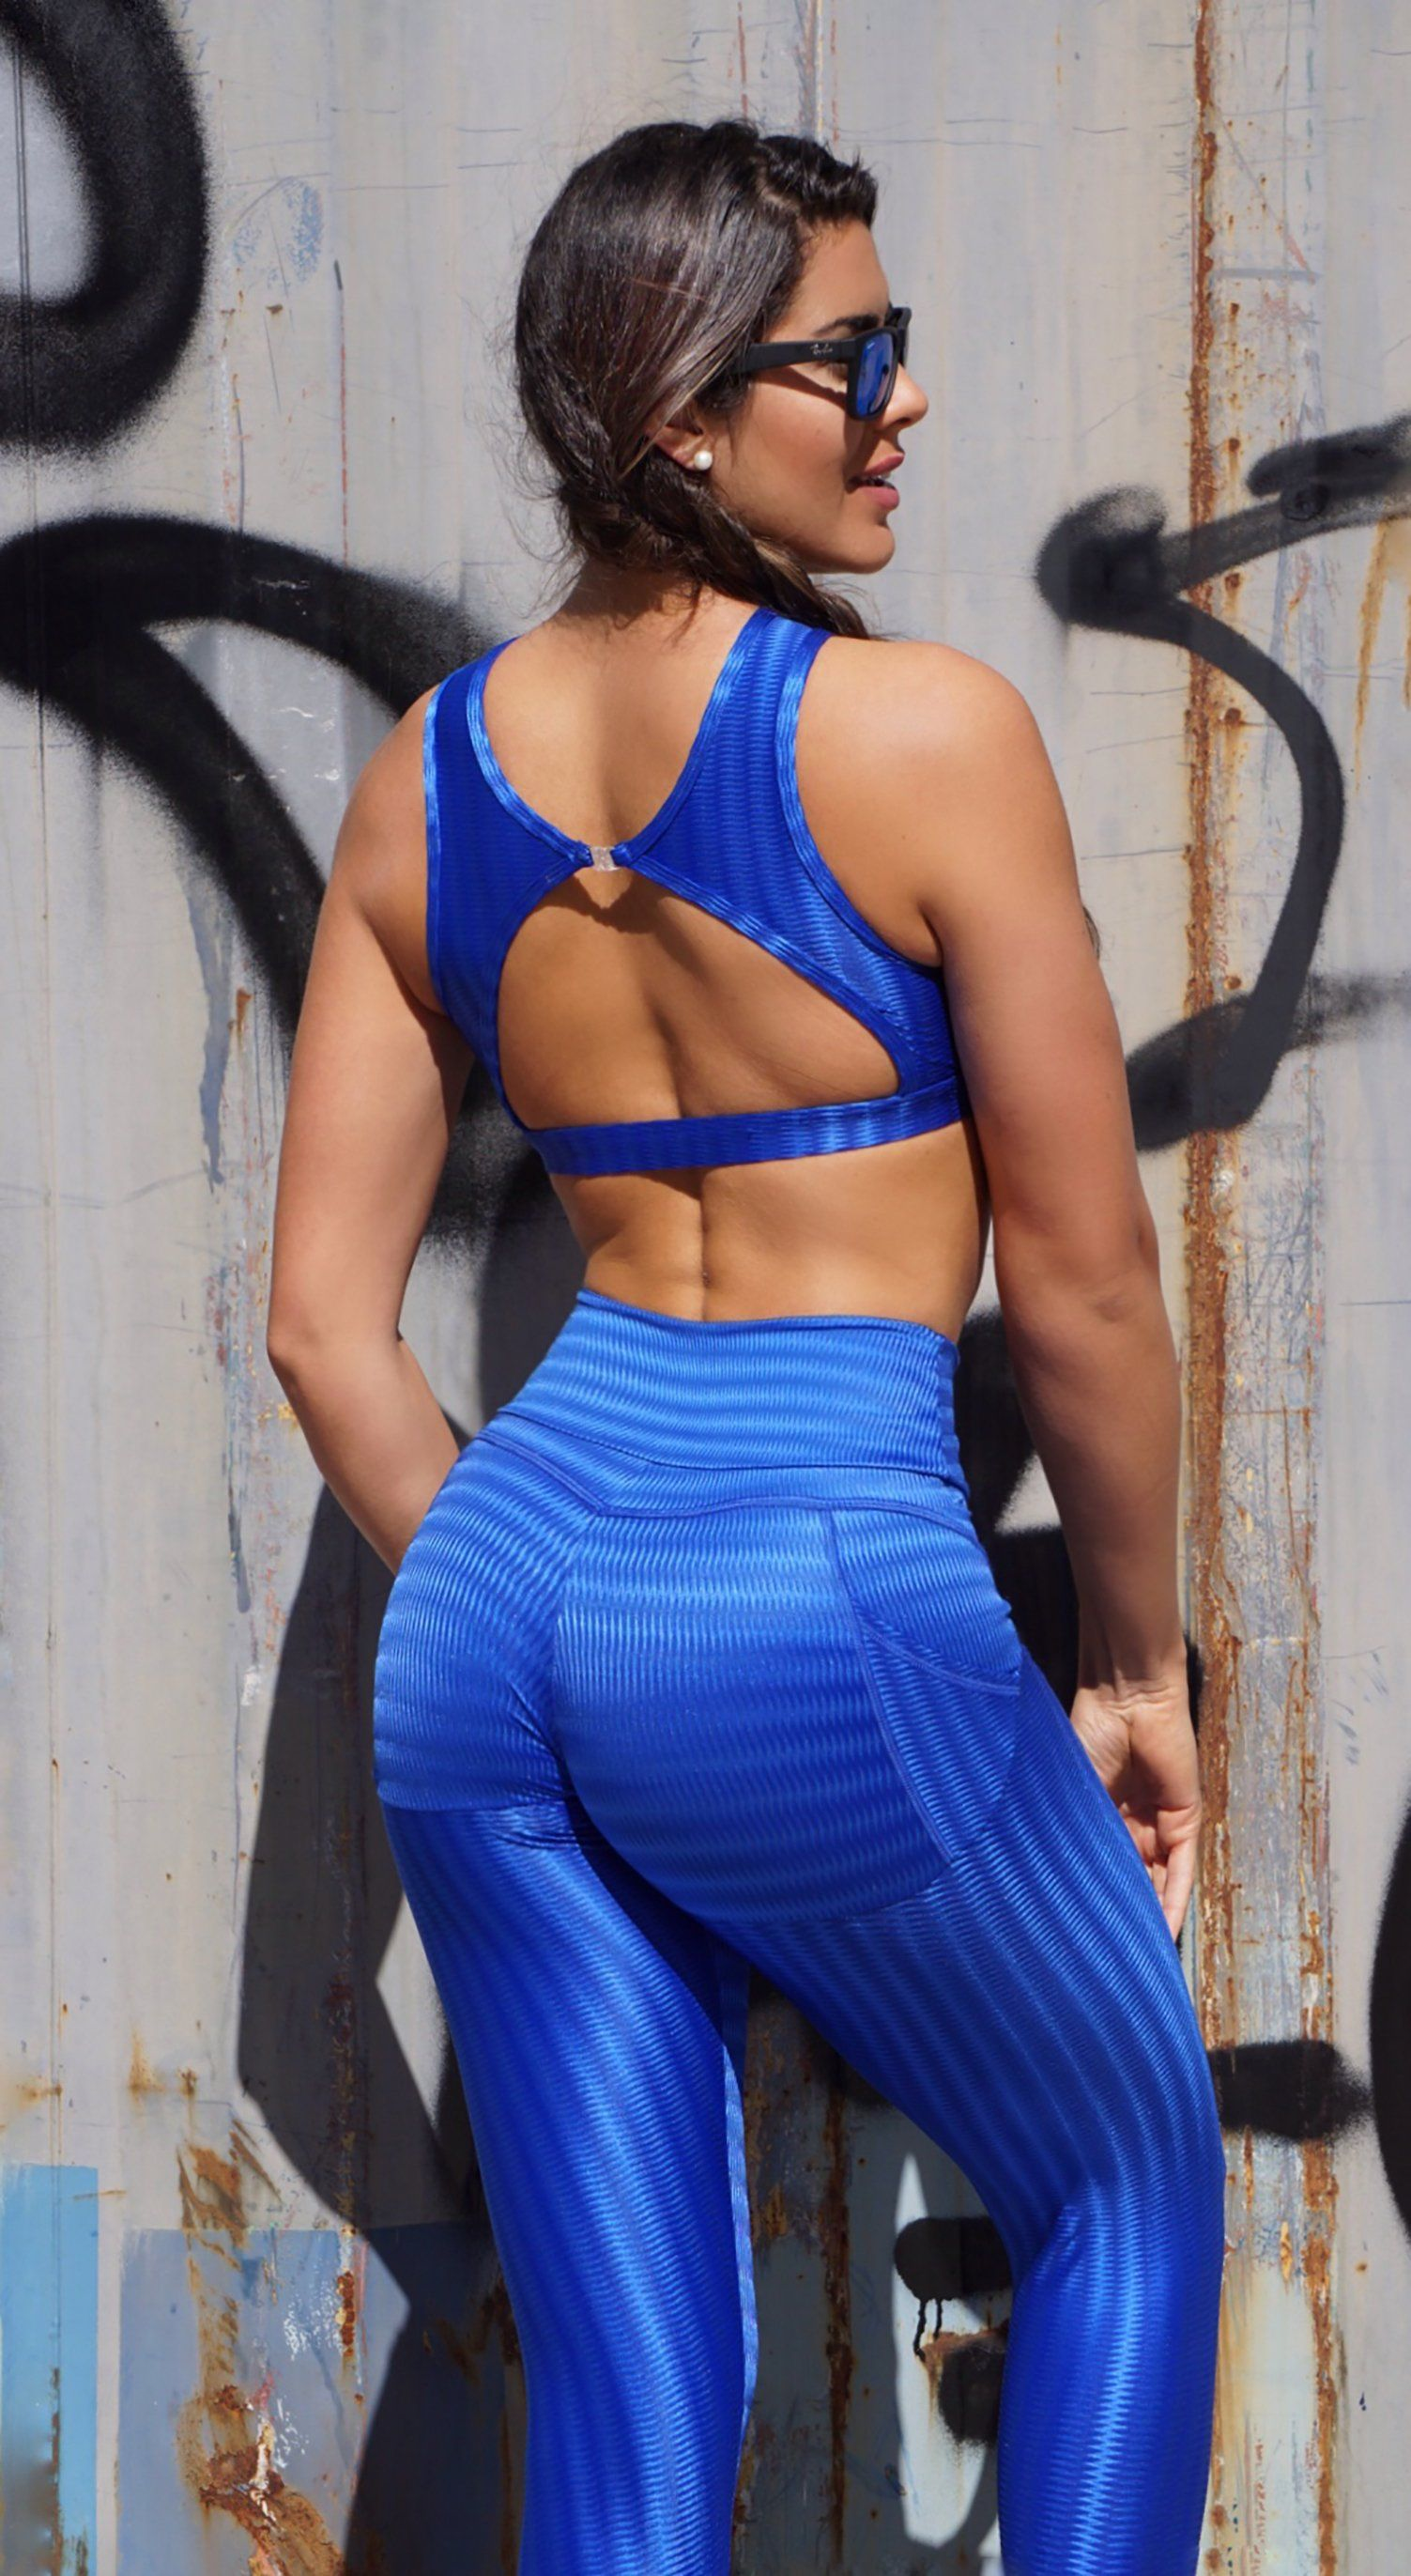 Brazilian Workout Legging - Push Up Butt Lift Royal Blue